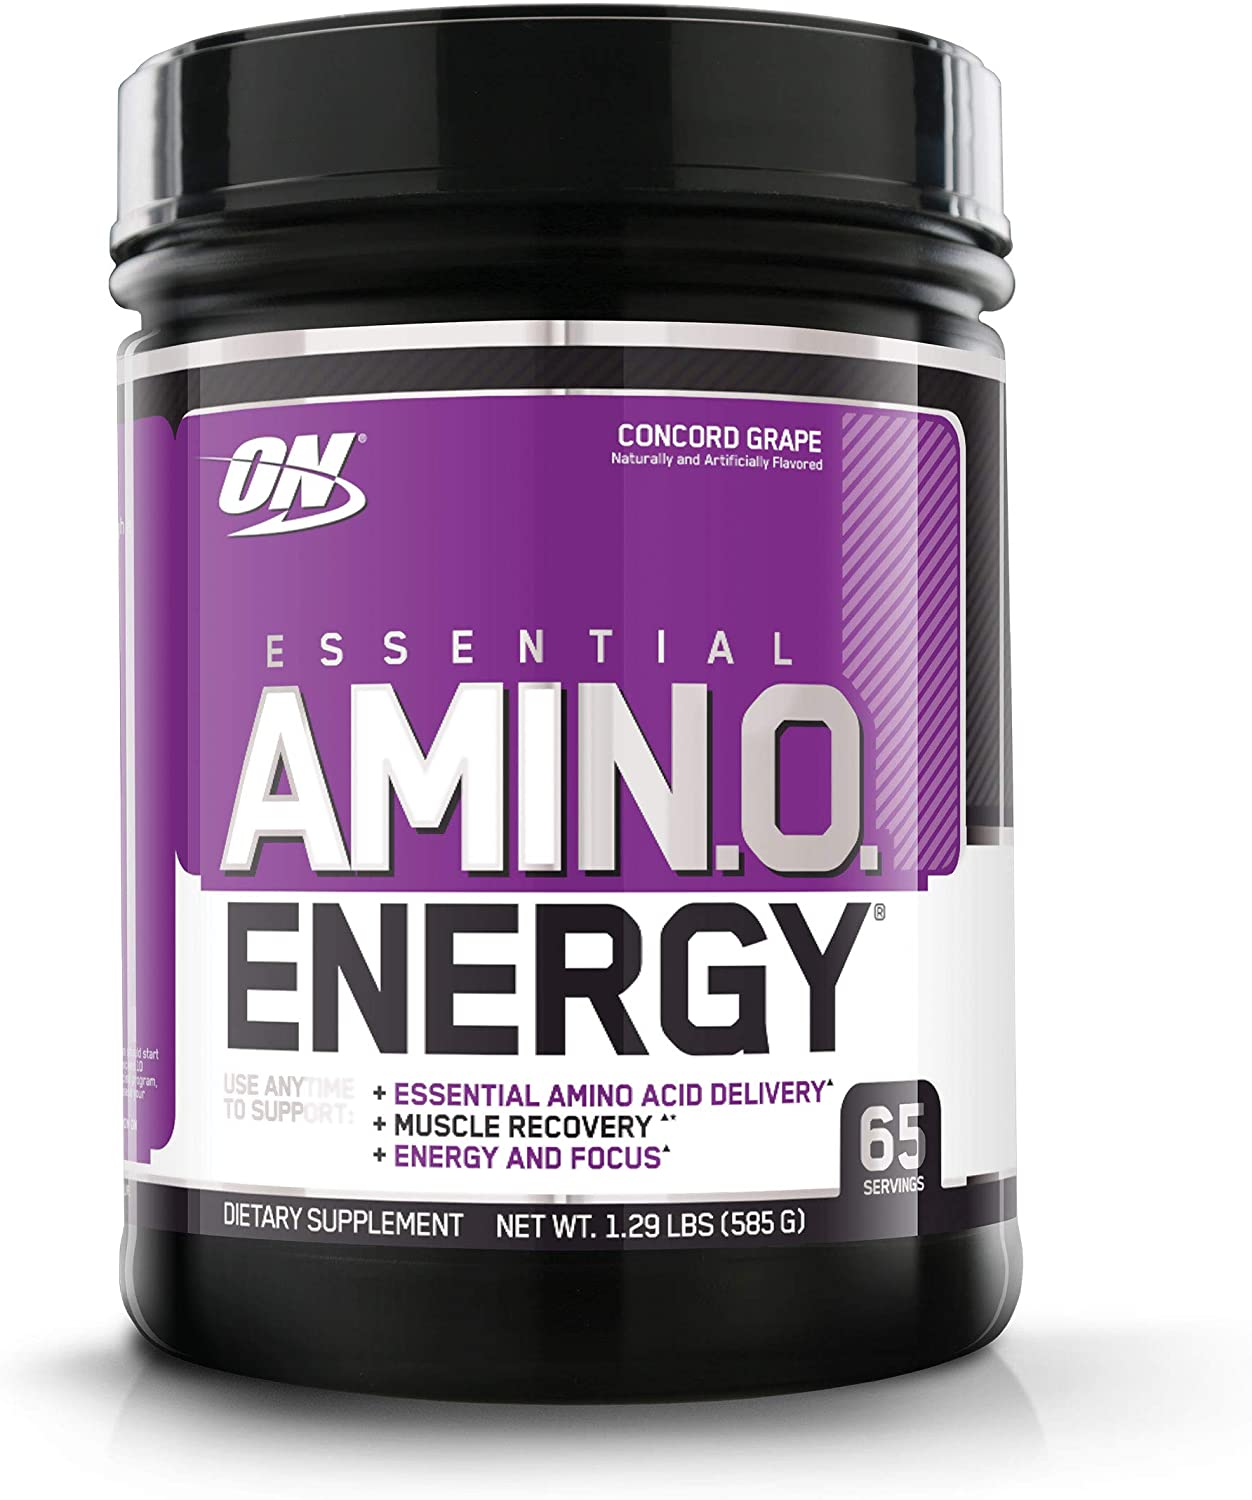 Optimum Nutrition Amino Energy - Pre Workout with Green Tea, BCAA, Amino Acids, Keto Friendly, Green Coffee Extract, Energy Powder - Concord Grape, 65 Servings: Health & Personal Care